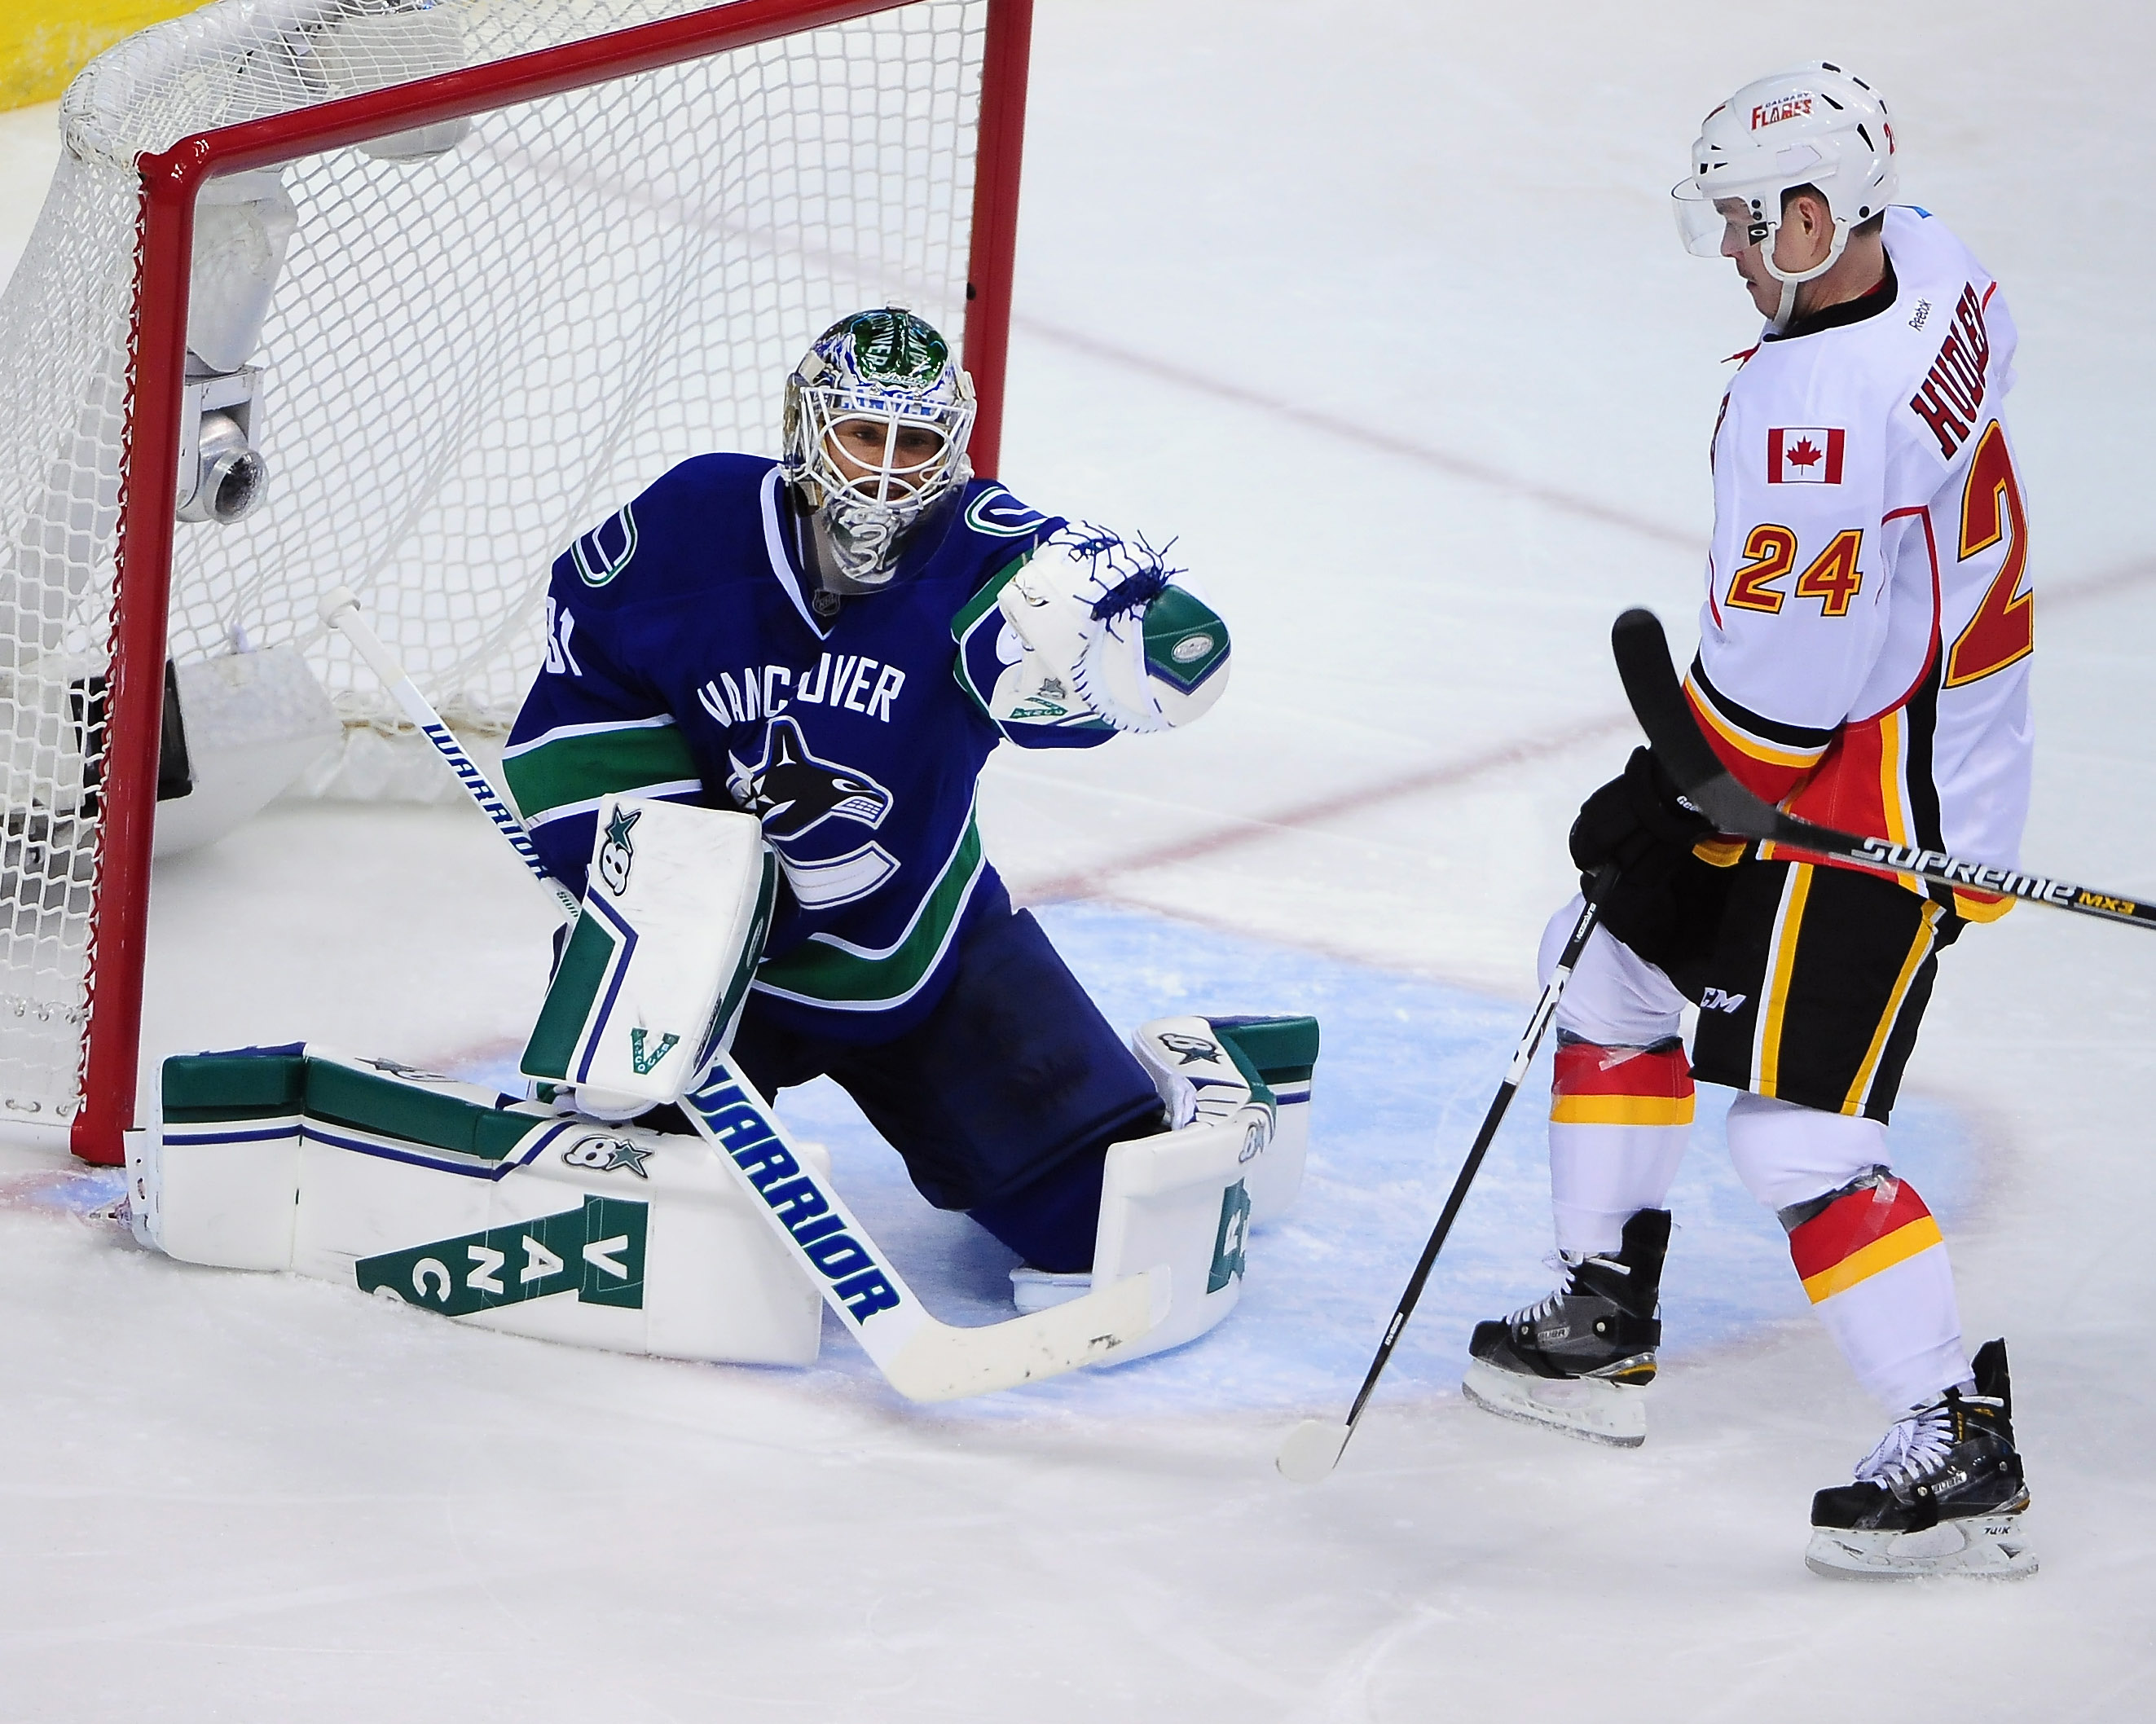 8525239-nhl-stanley-cup-playoffs-calgary-flames-at-vancouver-canucks